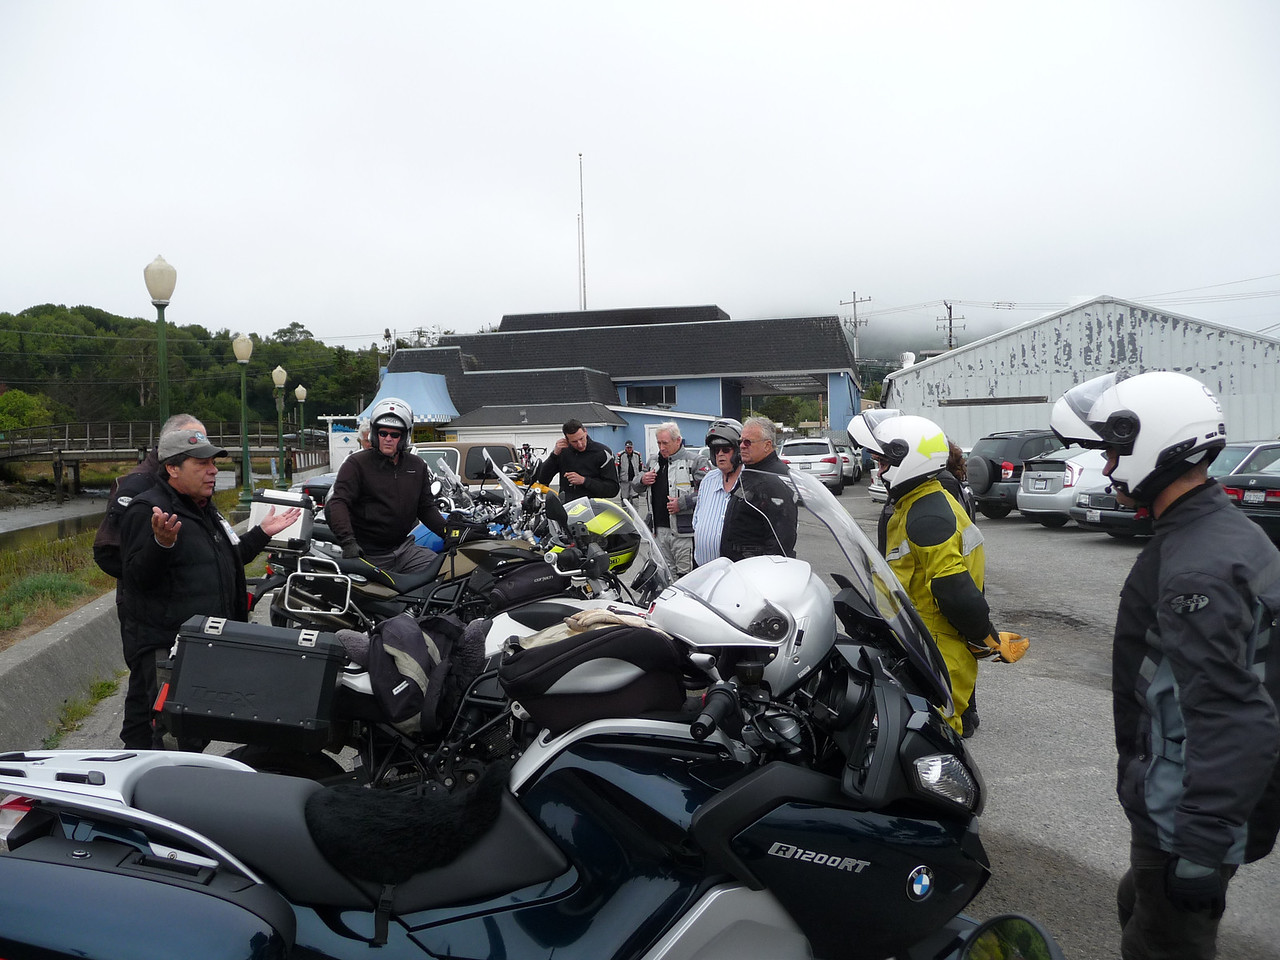 The Ride Briefing